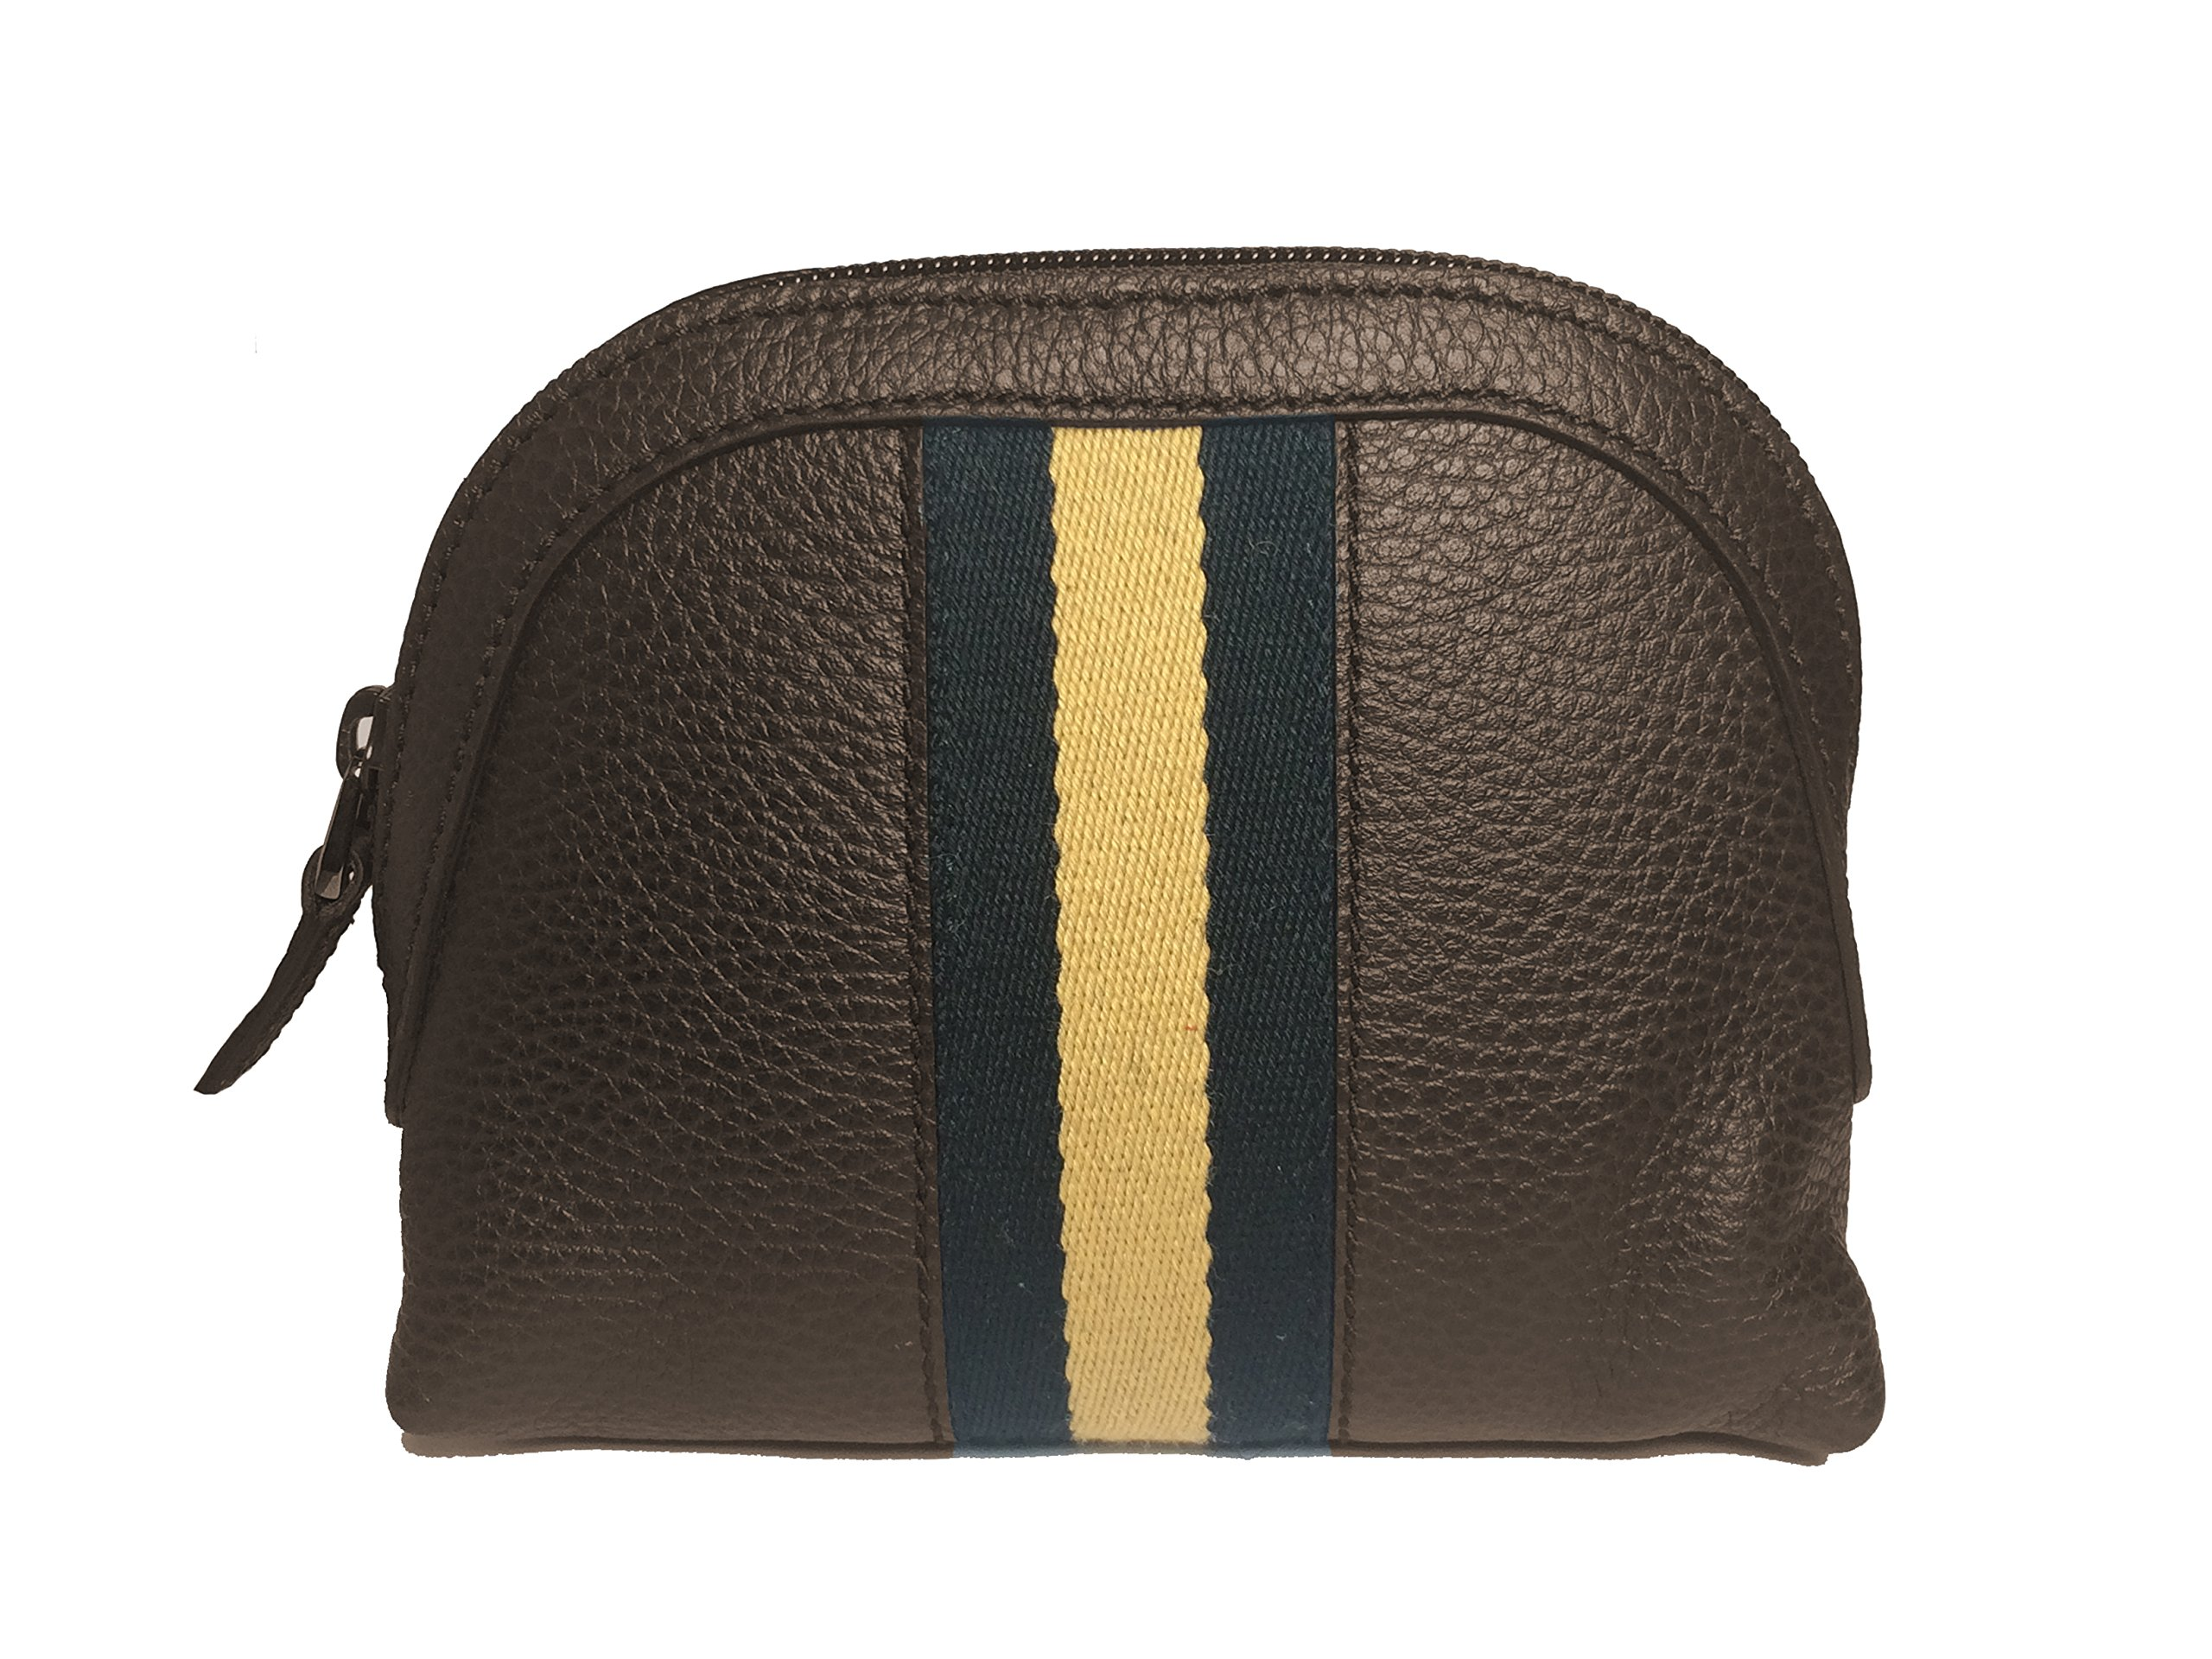 Gucci Women's Web Brown Leather Cosmetic Case 339558 2064